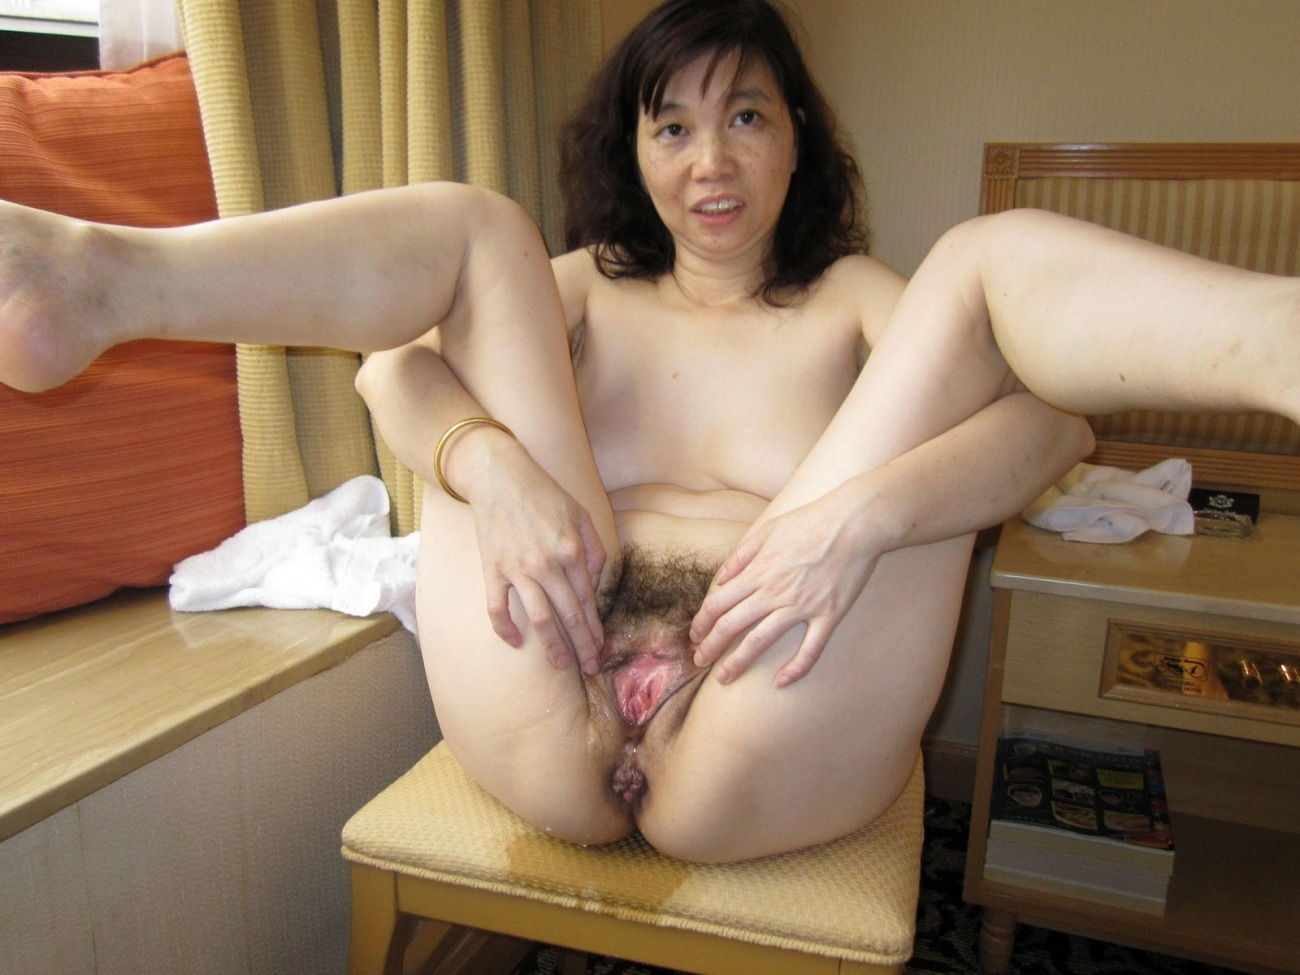 Hairy mature asian women naked